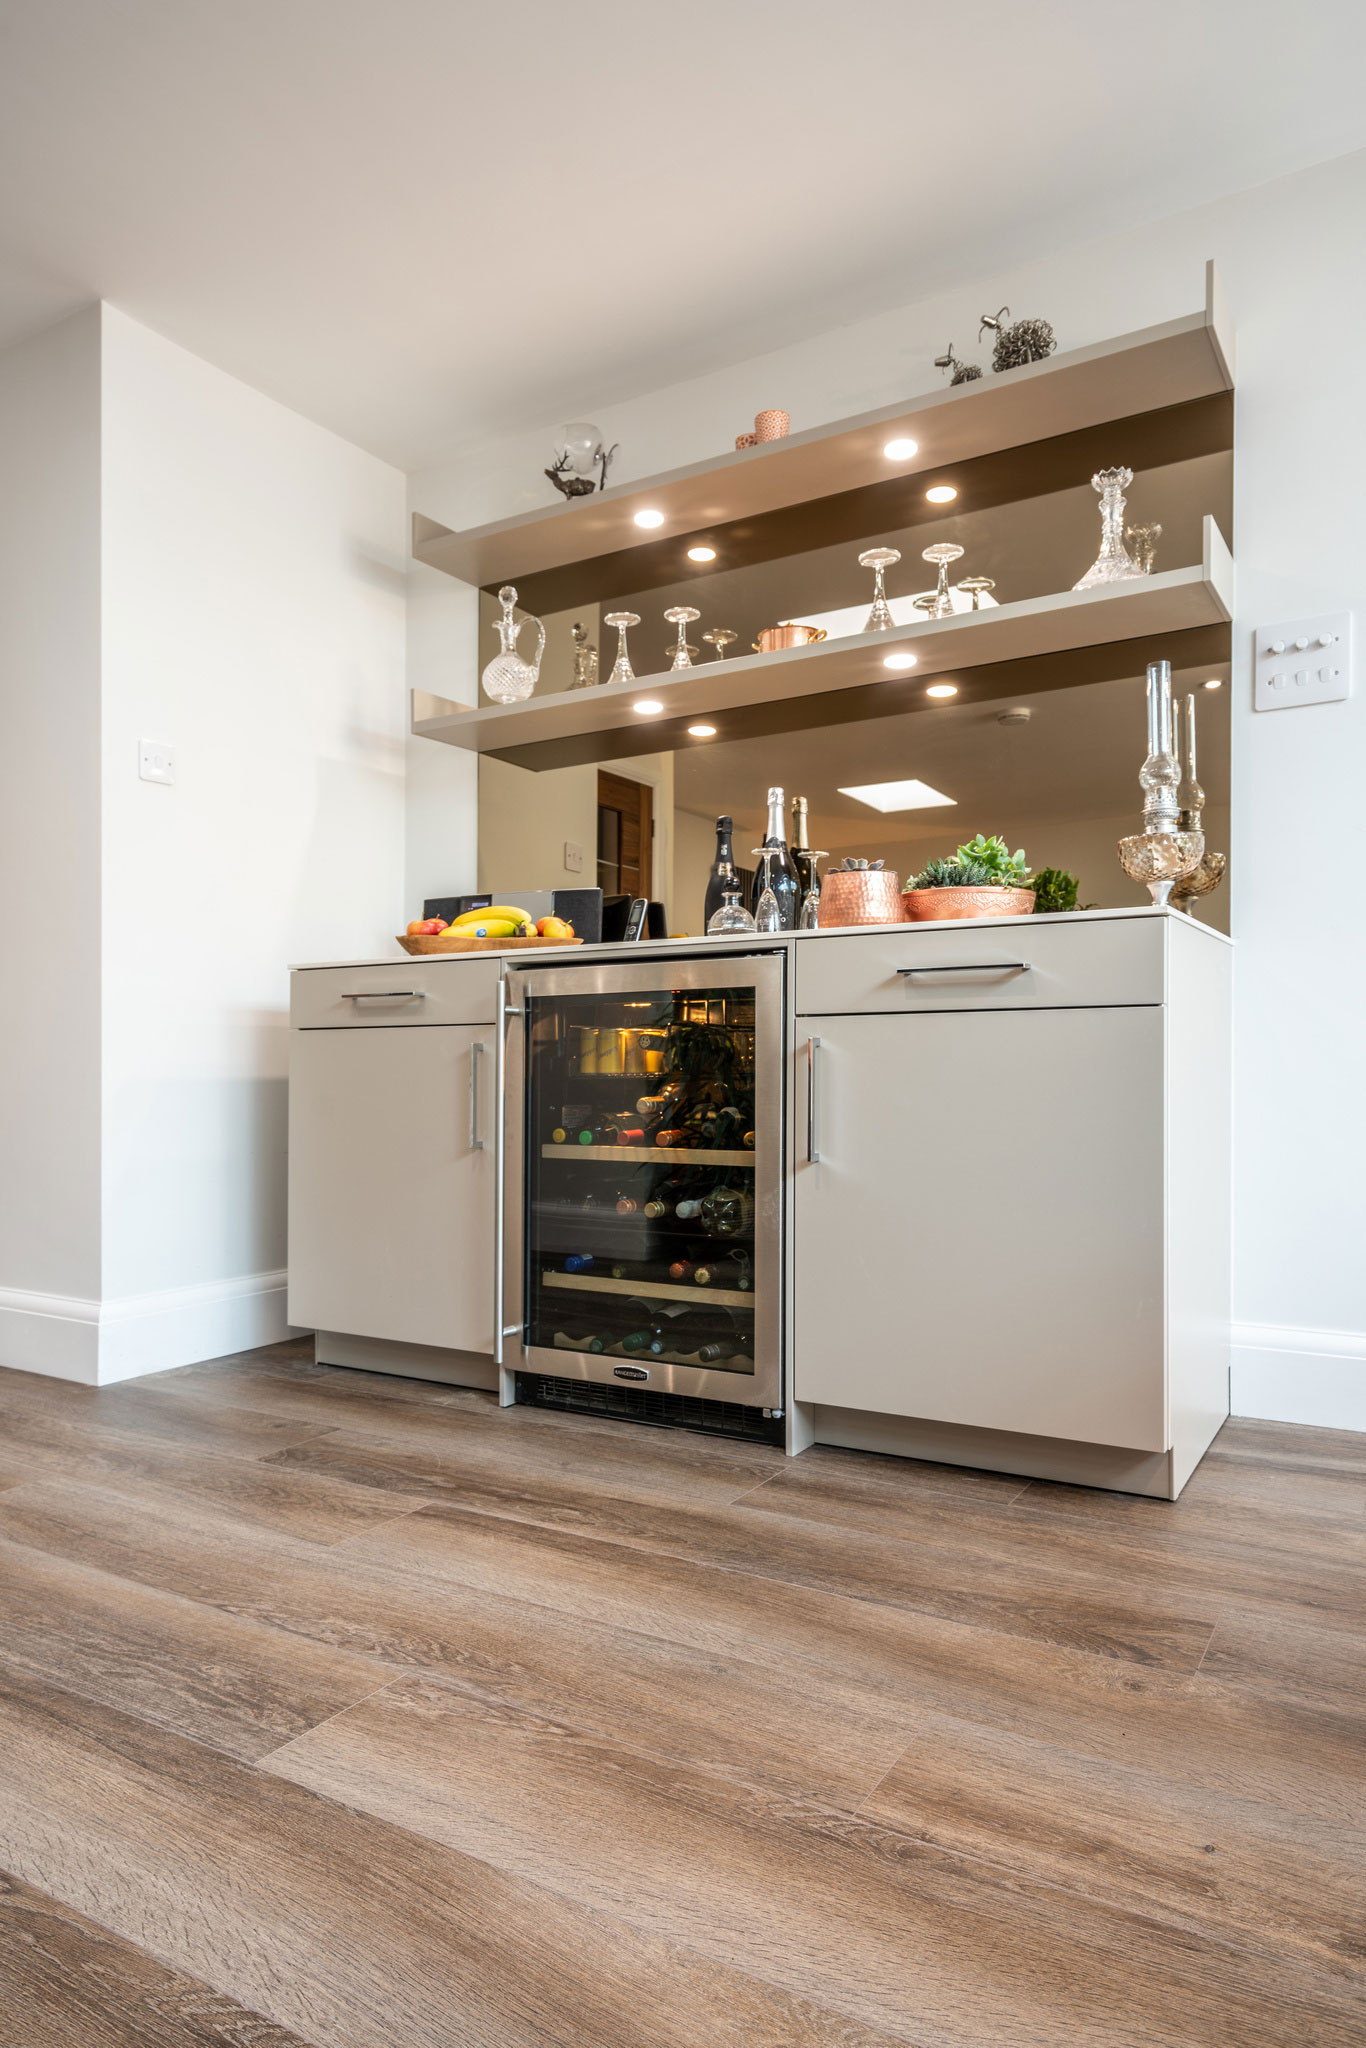 Image of Myers Touch Daniels Kitchen 01139 ZF 2442 14358 1 050 in A space designed for socializing - Cosentino